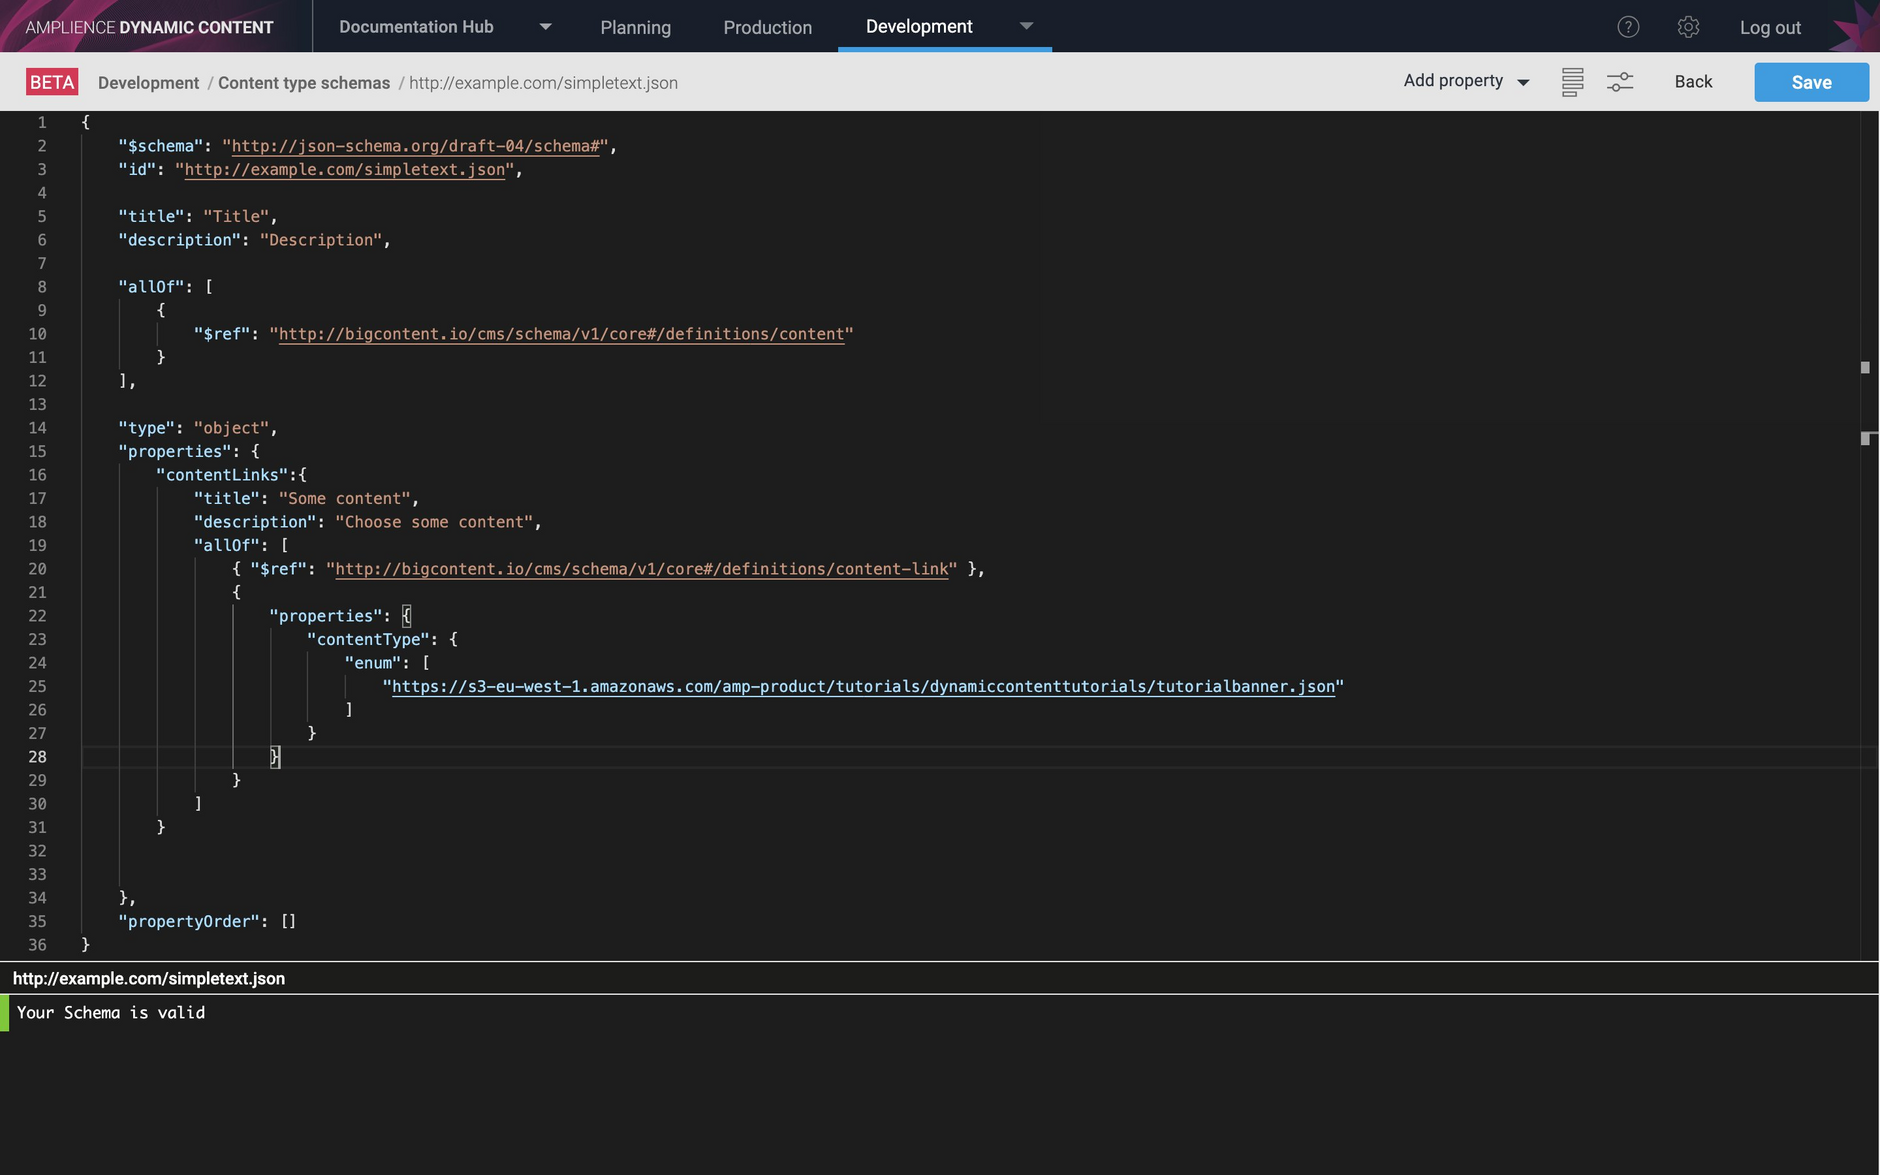 The selected content type URI is added to the schema editor window